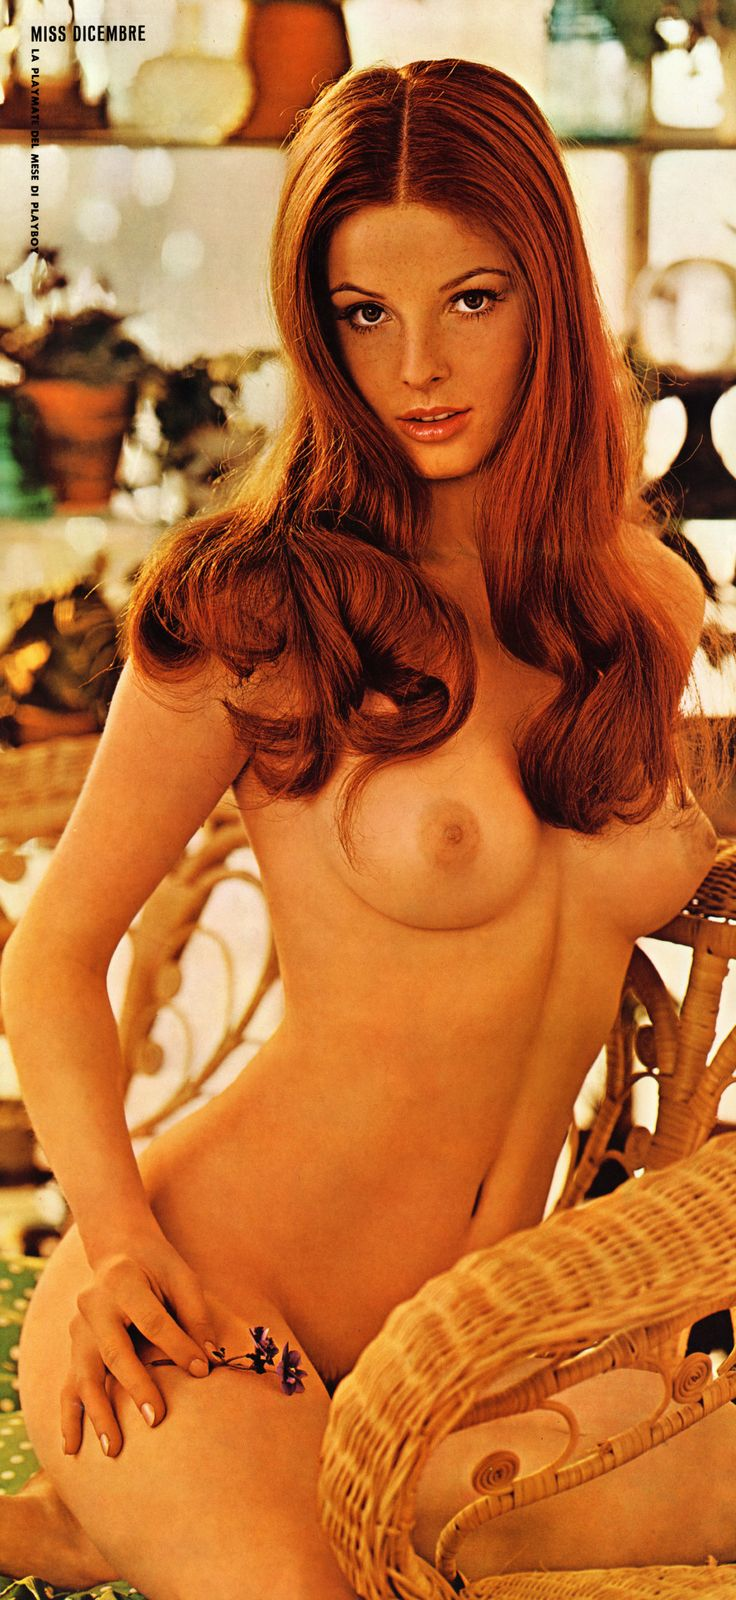 Deanna Baker, PMOM - May 1972, featured in Italian edition pictorial, Libertà e Judo, December 1972